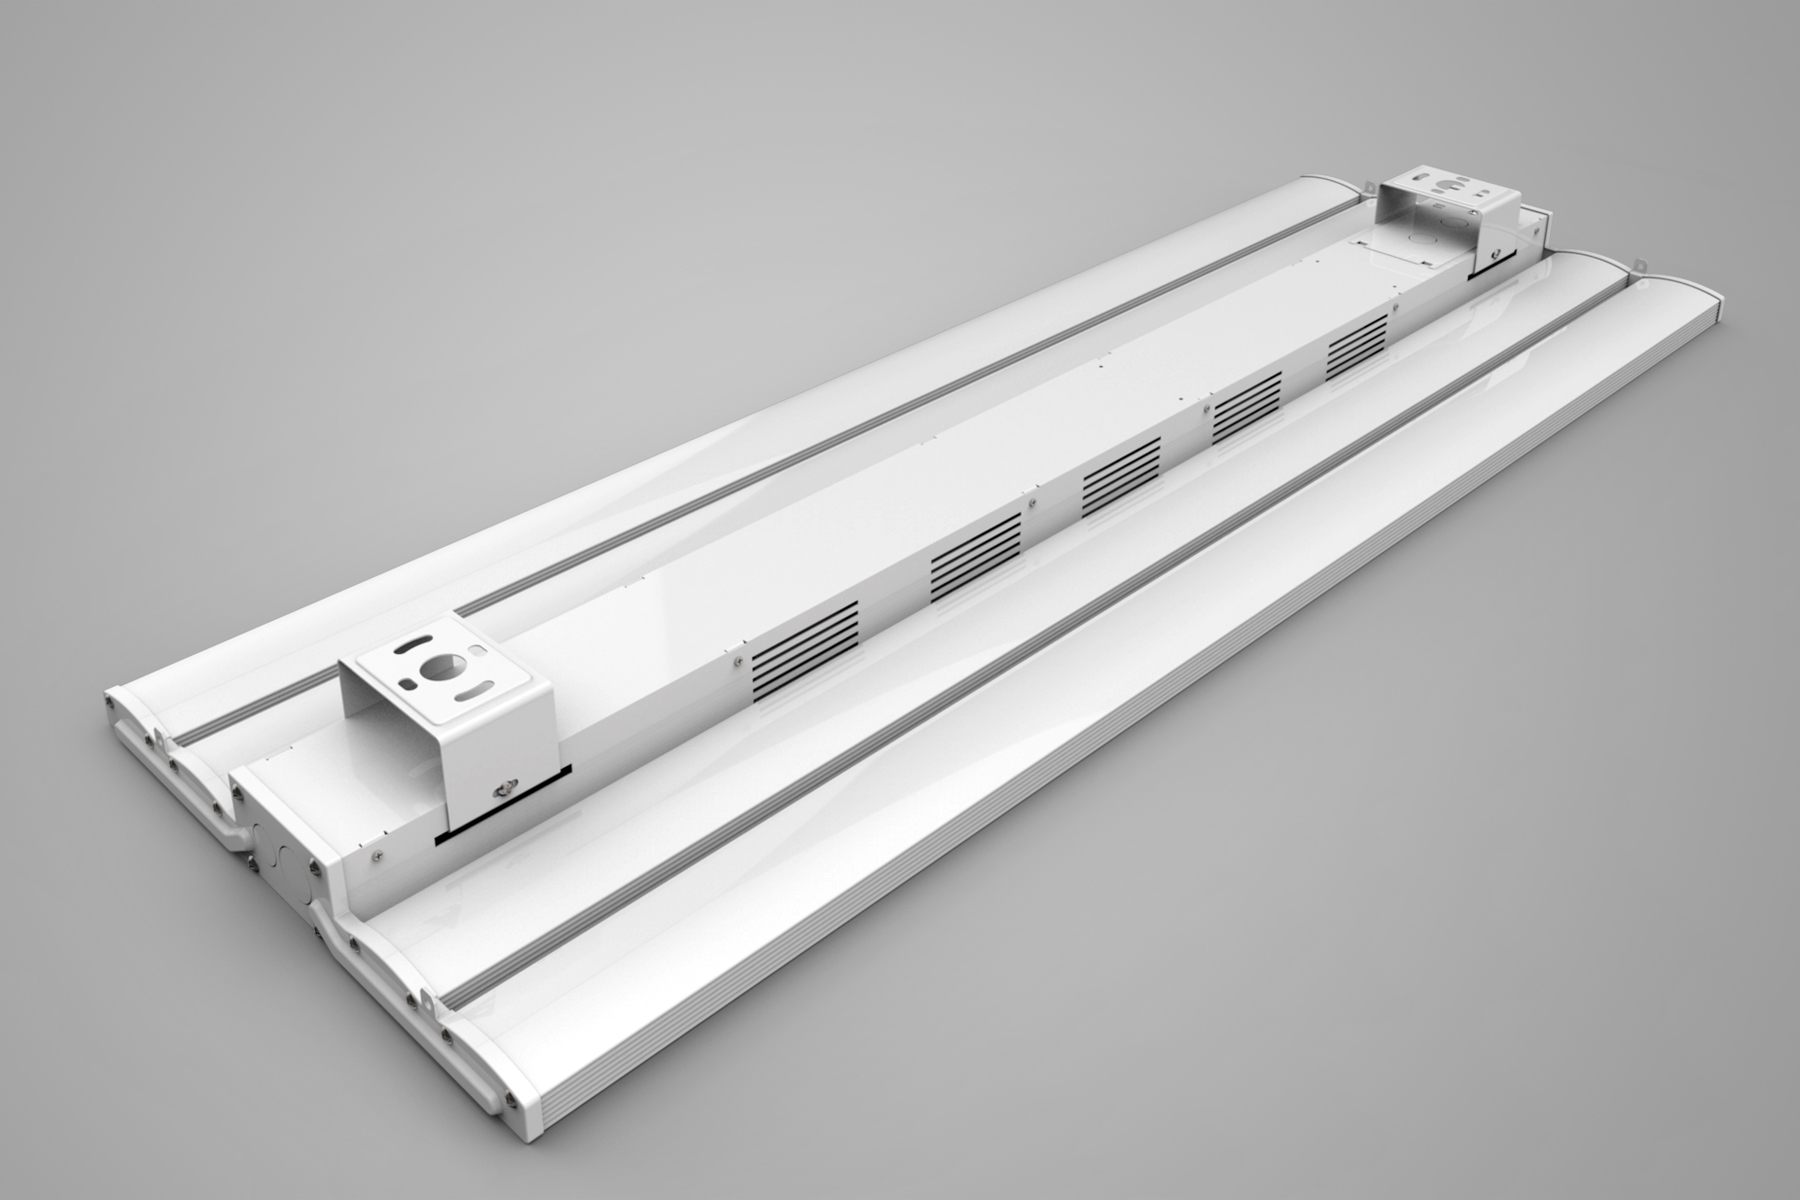 300W Linear High Bay with Surface Mounts